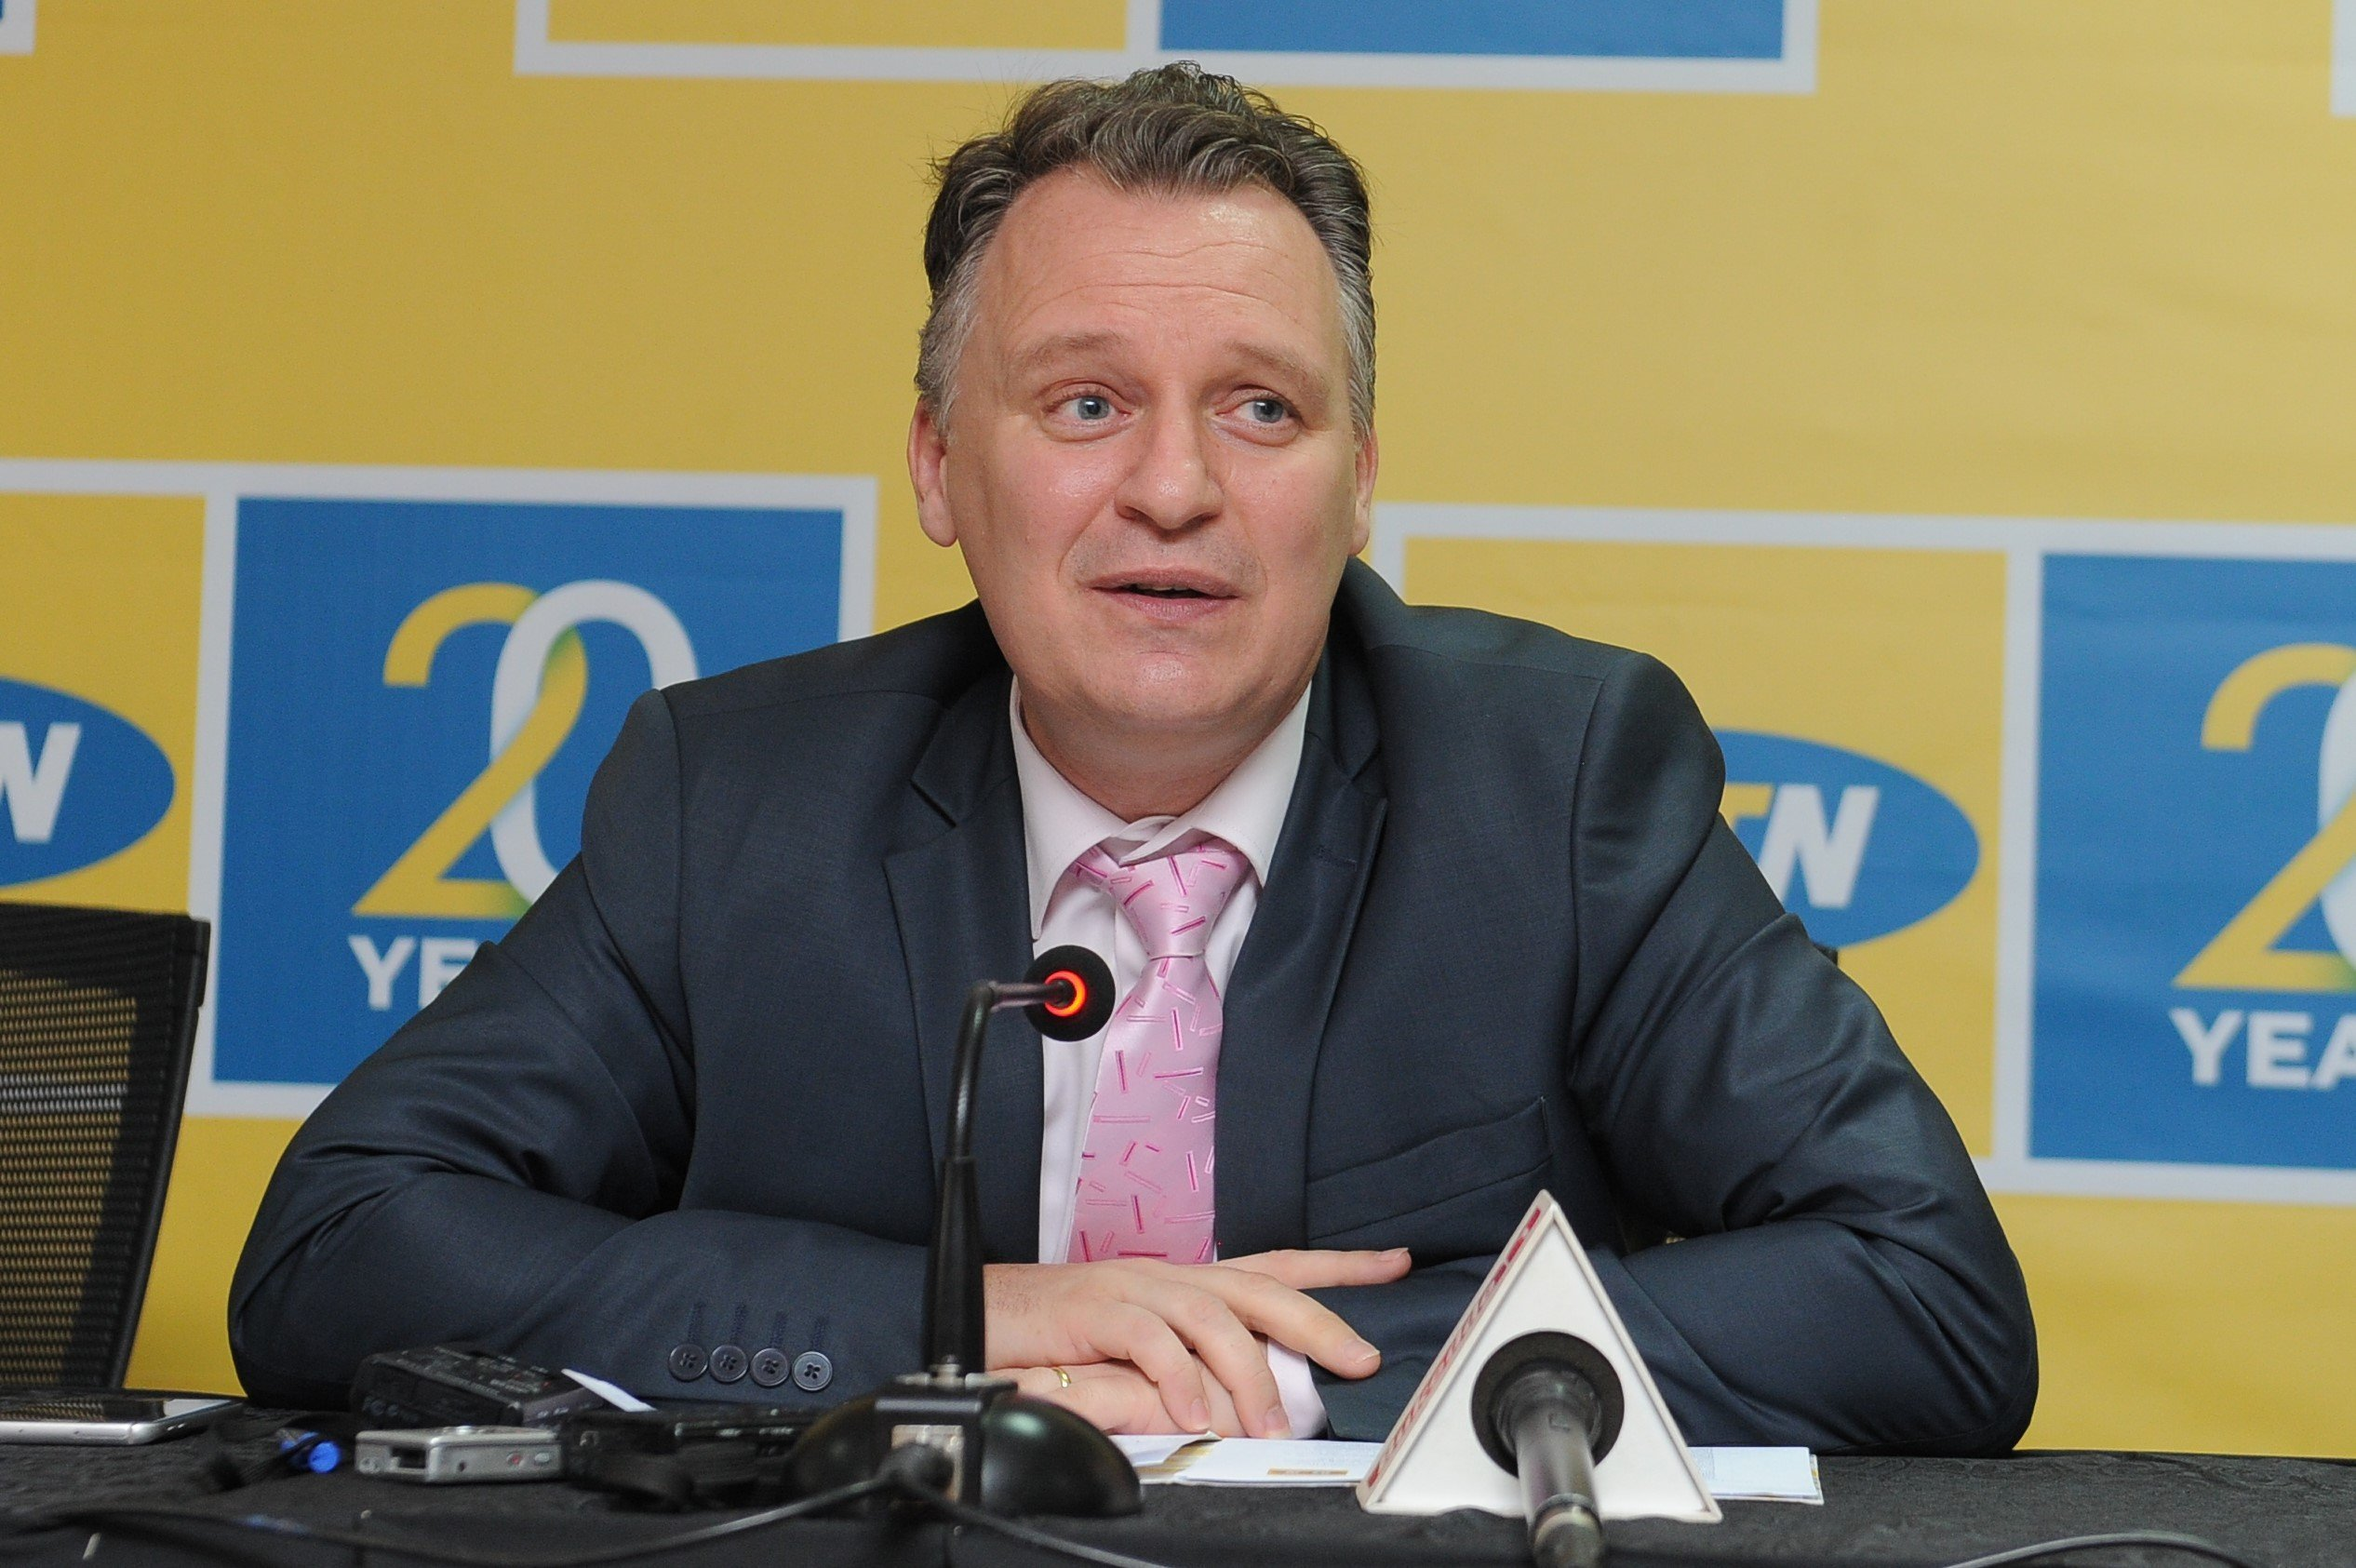 MTN Uganda Chief Executive Officer, Belgian Wim Vanhelleputte was unceremoniously deported in February, 2019 (FILE PHOTO)